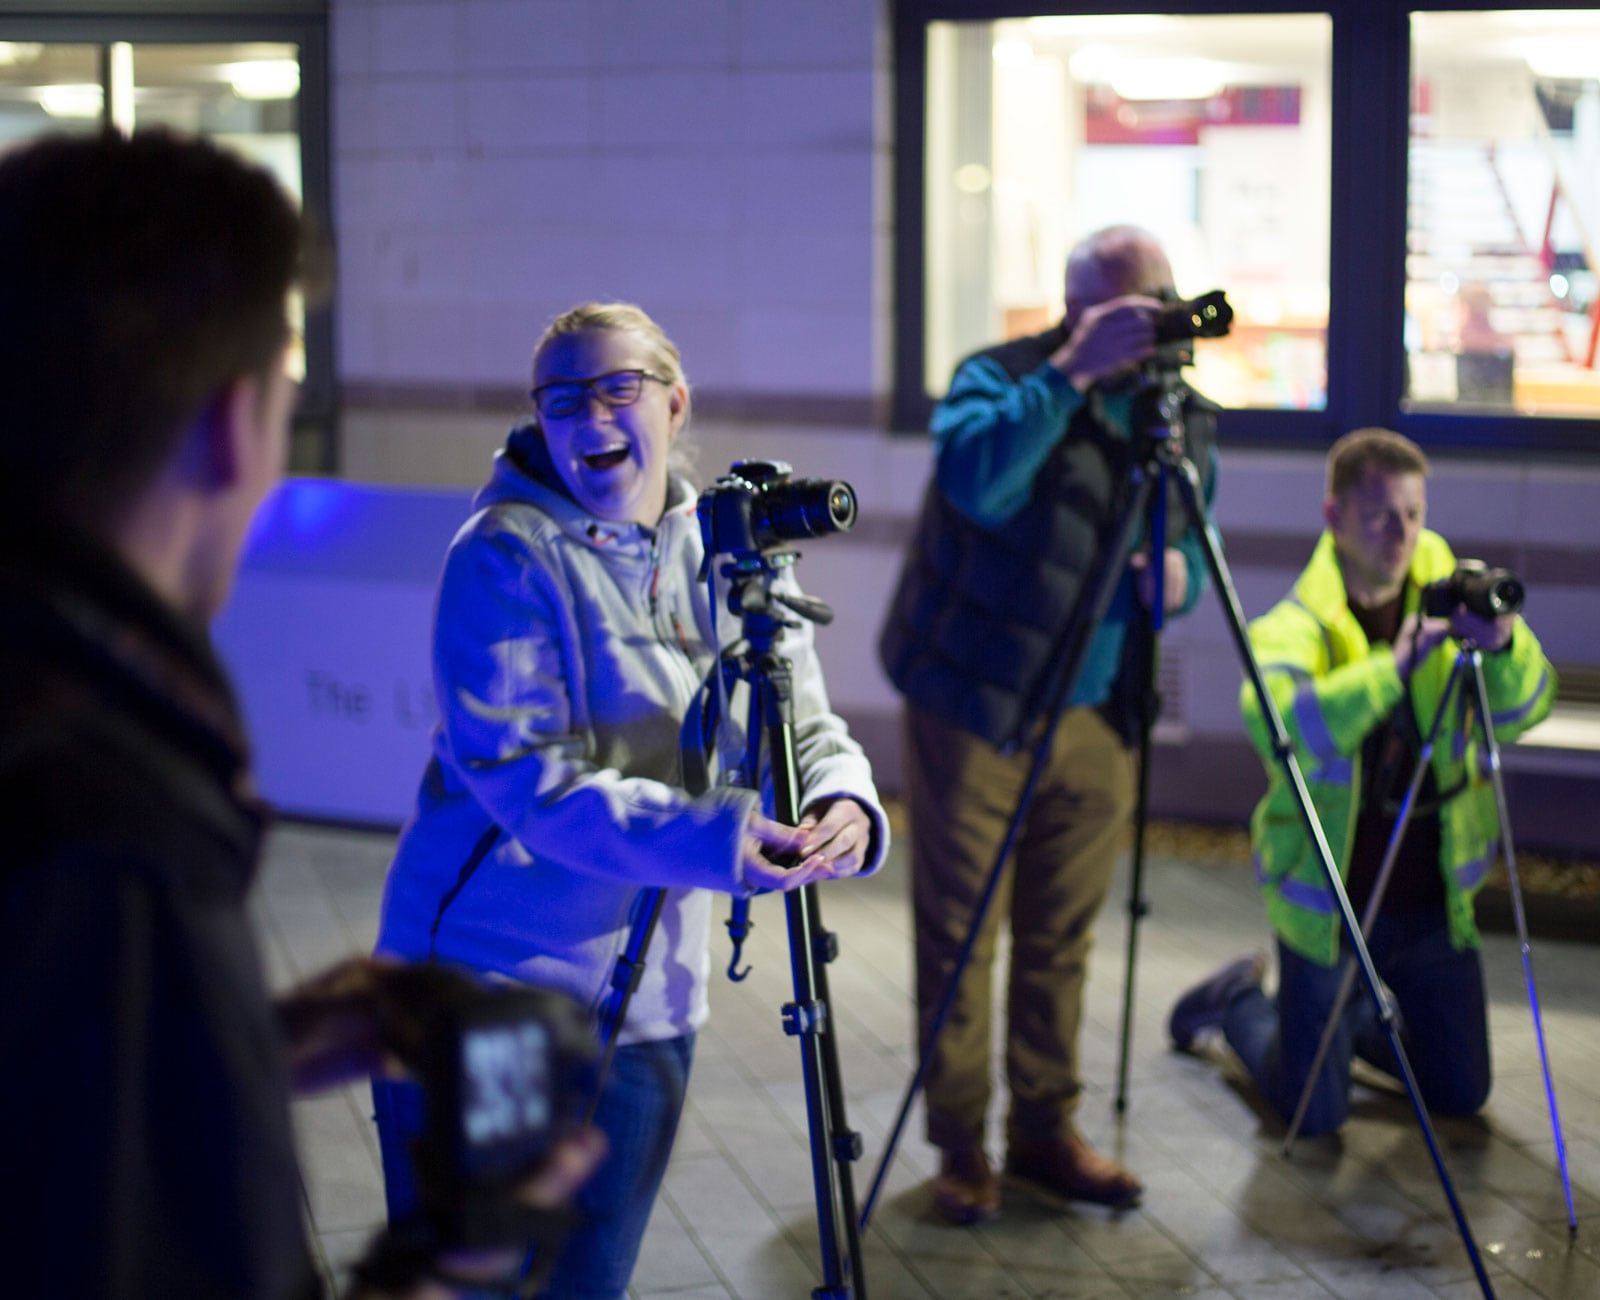 Students using cameras on tripods at night time